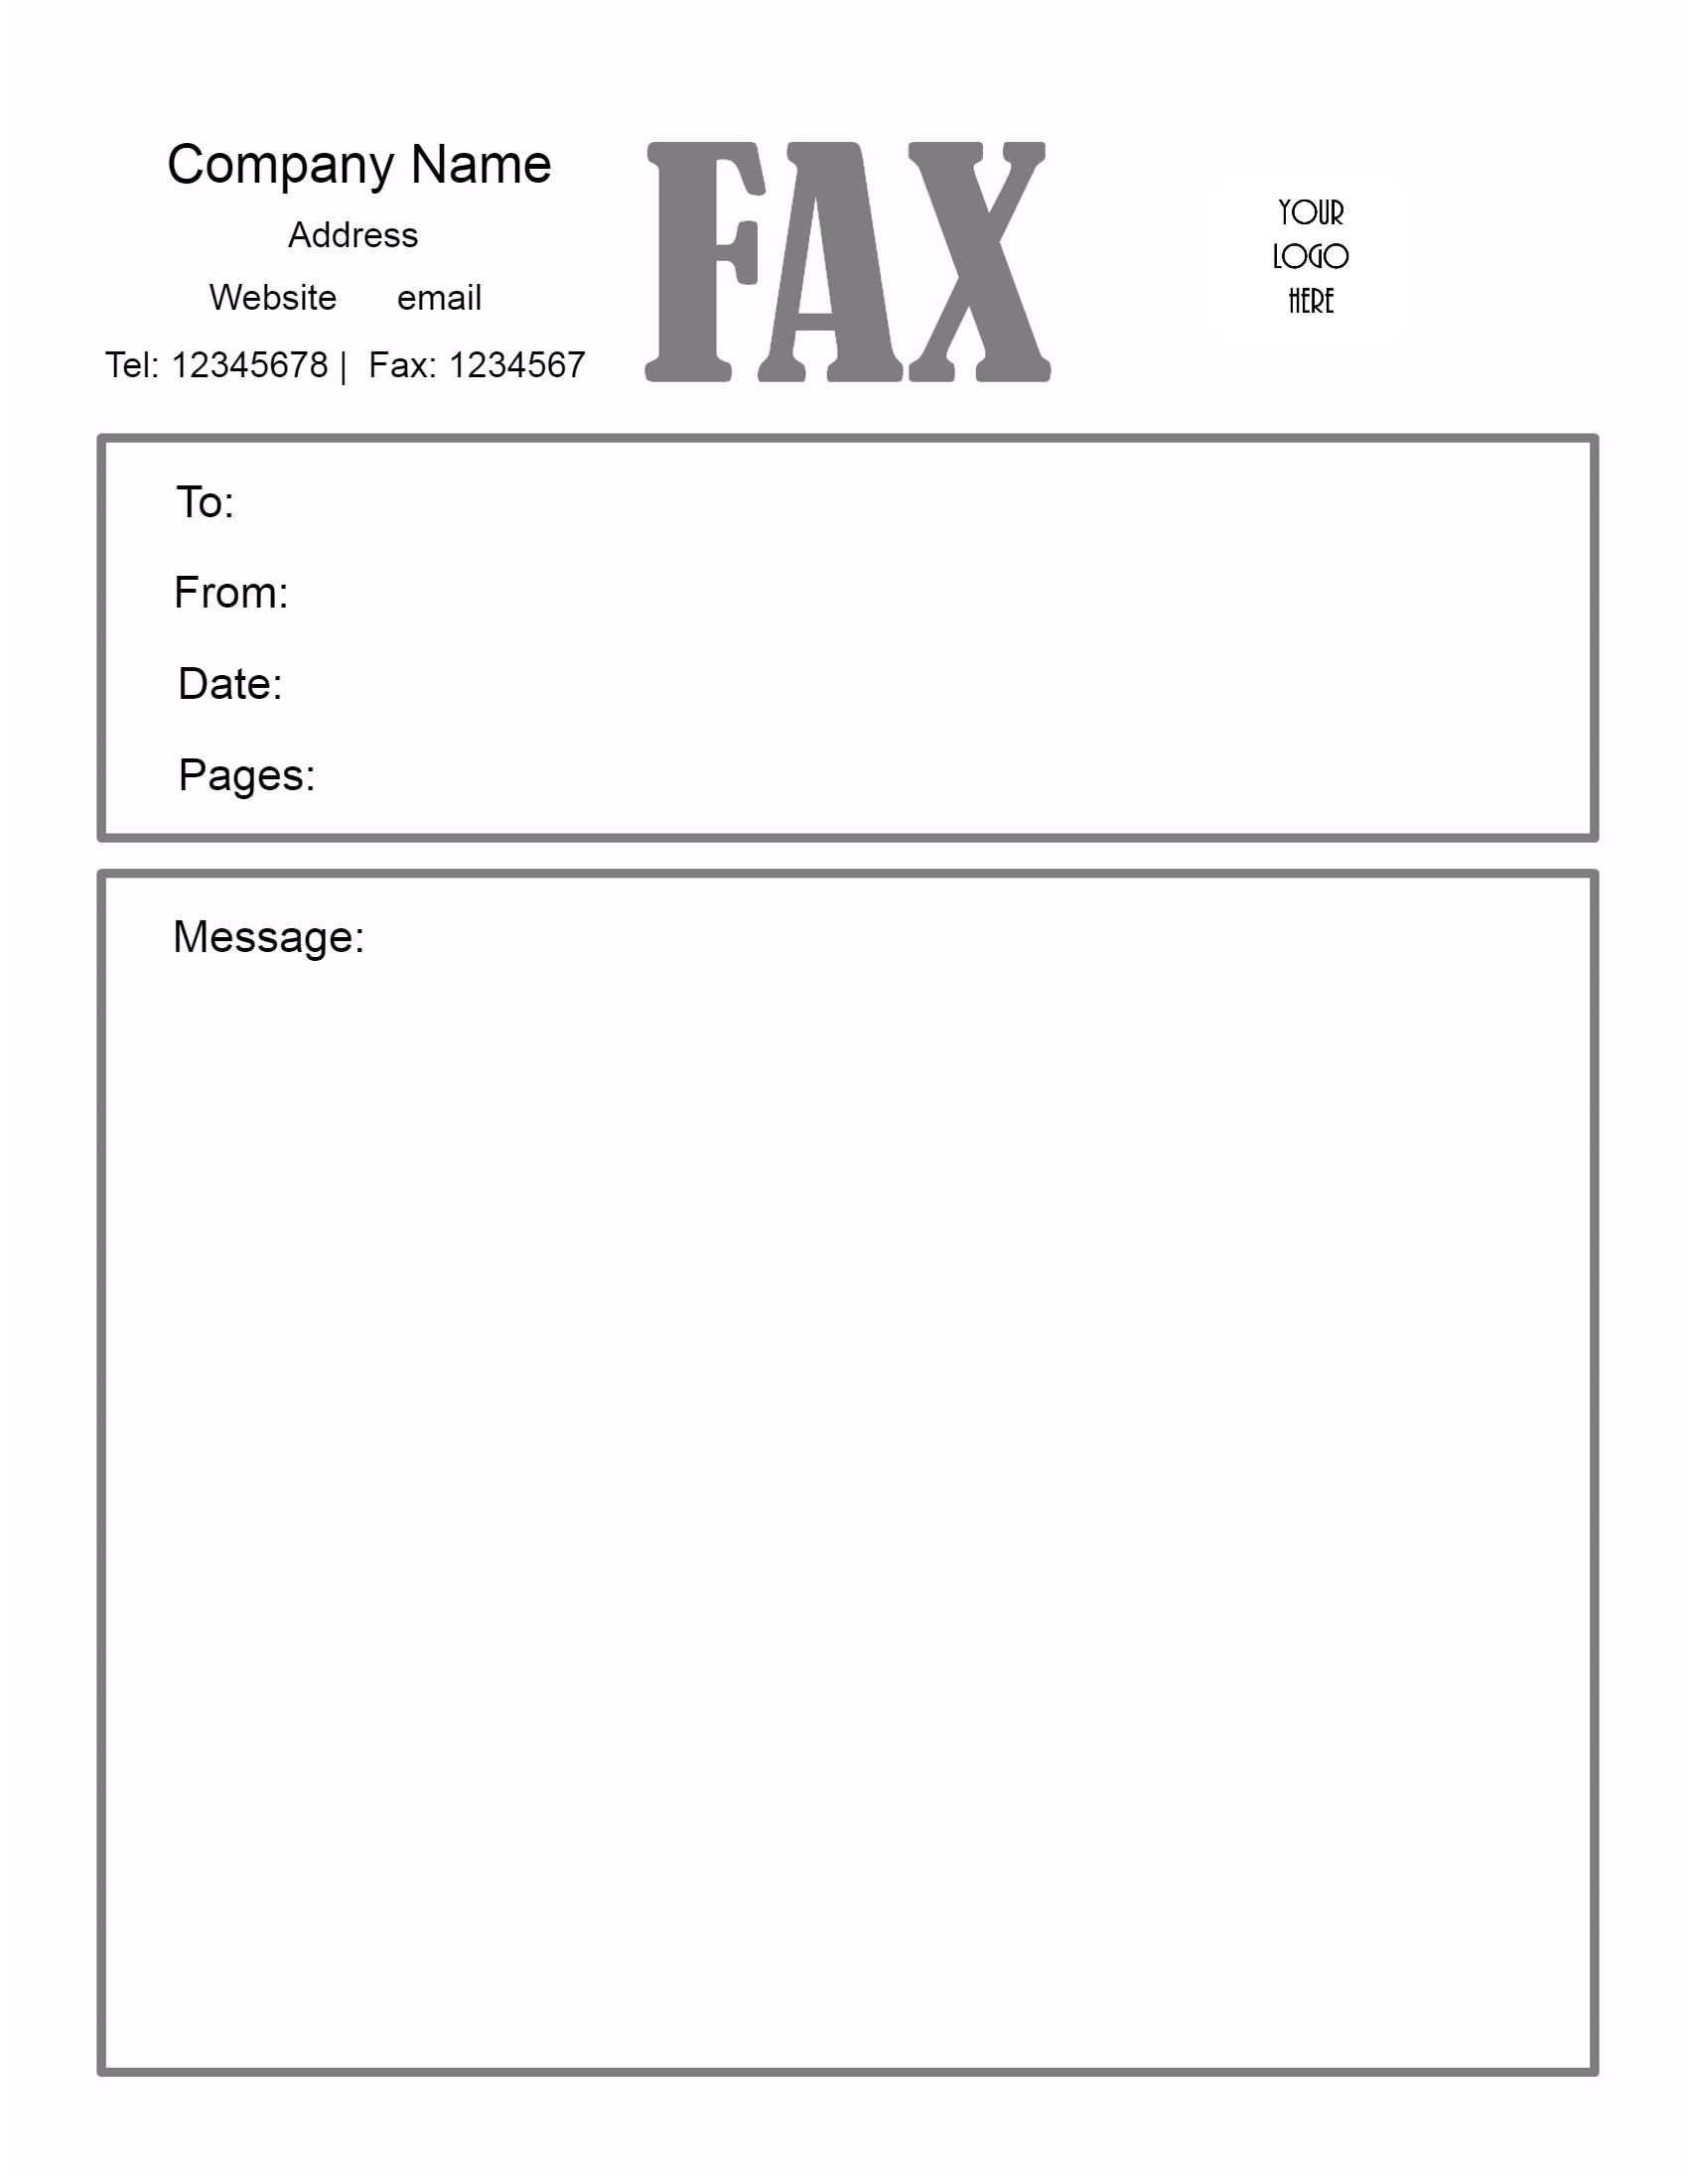 sample fax cover letter sample fax cover letter makemoney alex tk